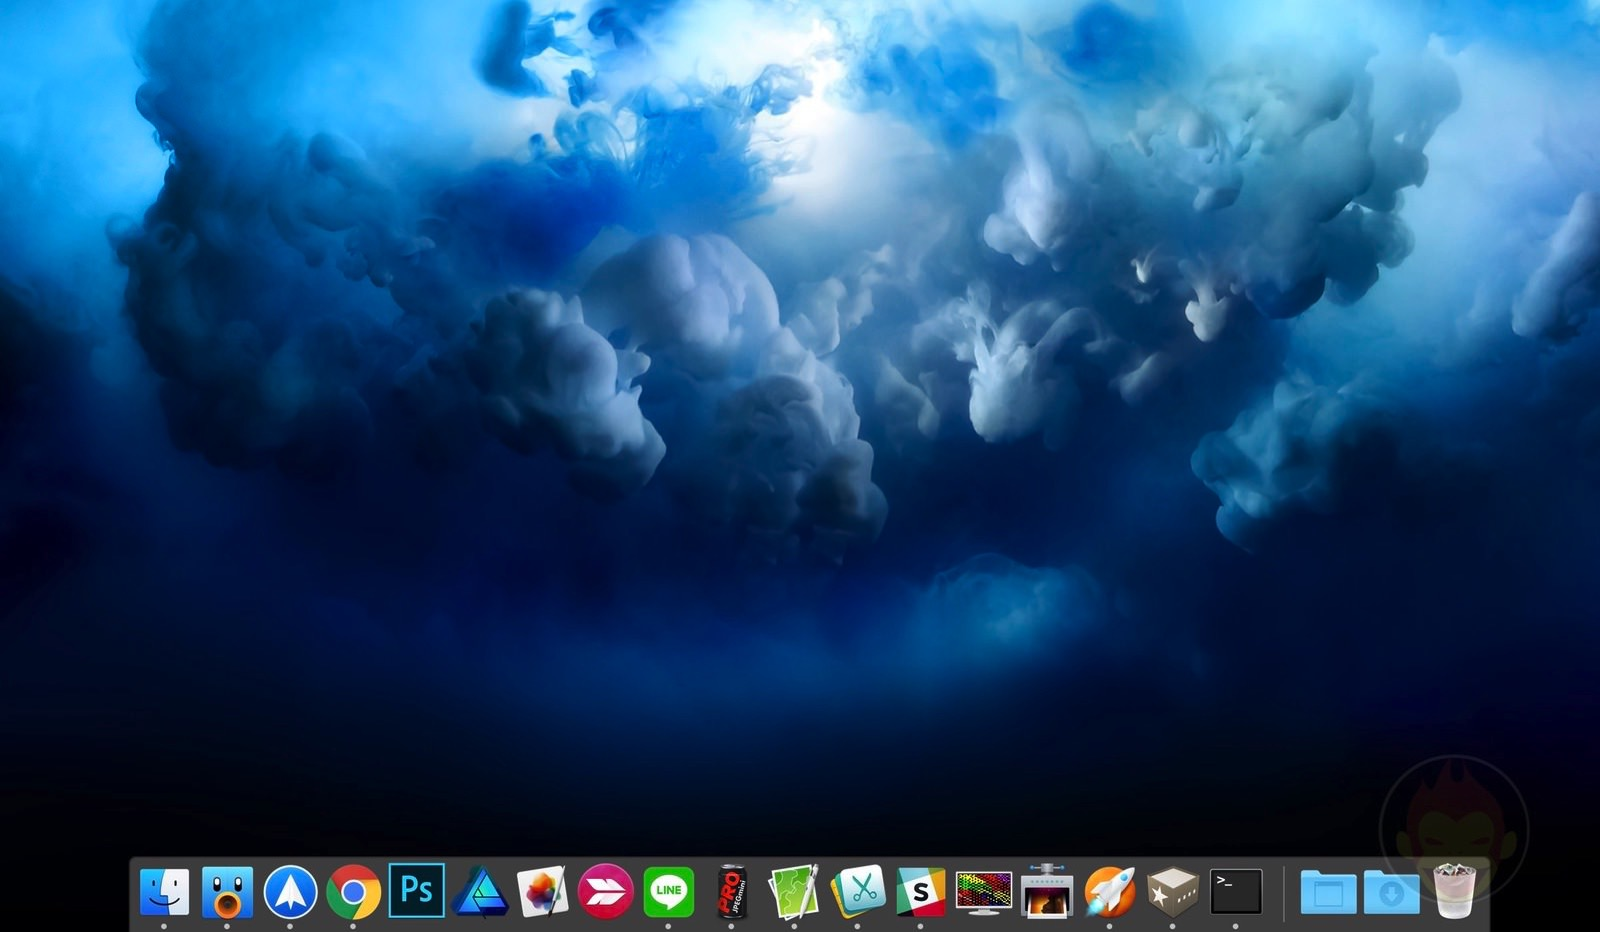 Showing only running apps on macos dock 01